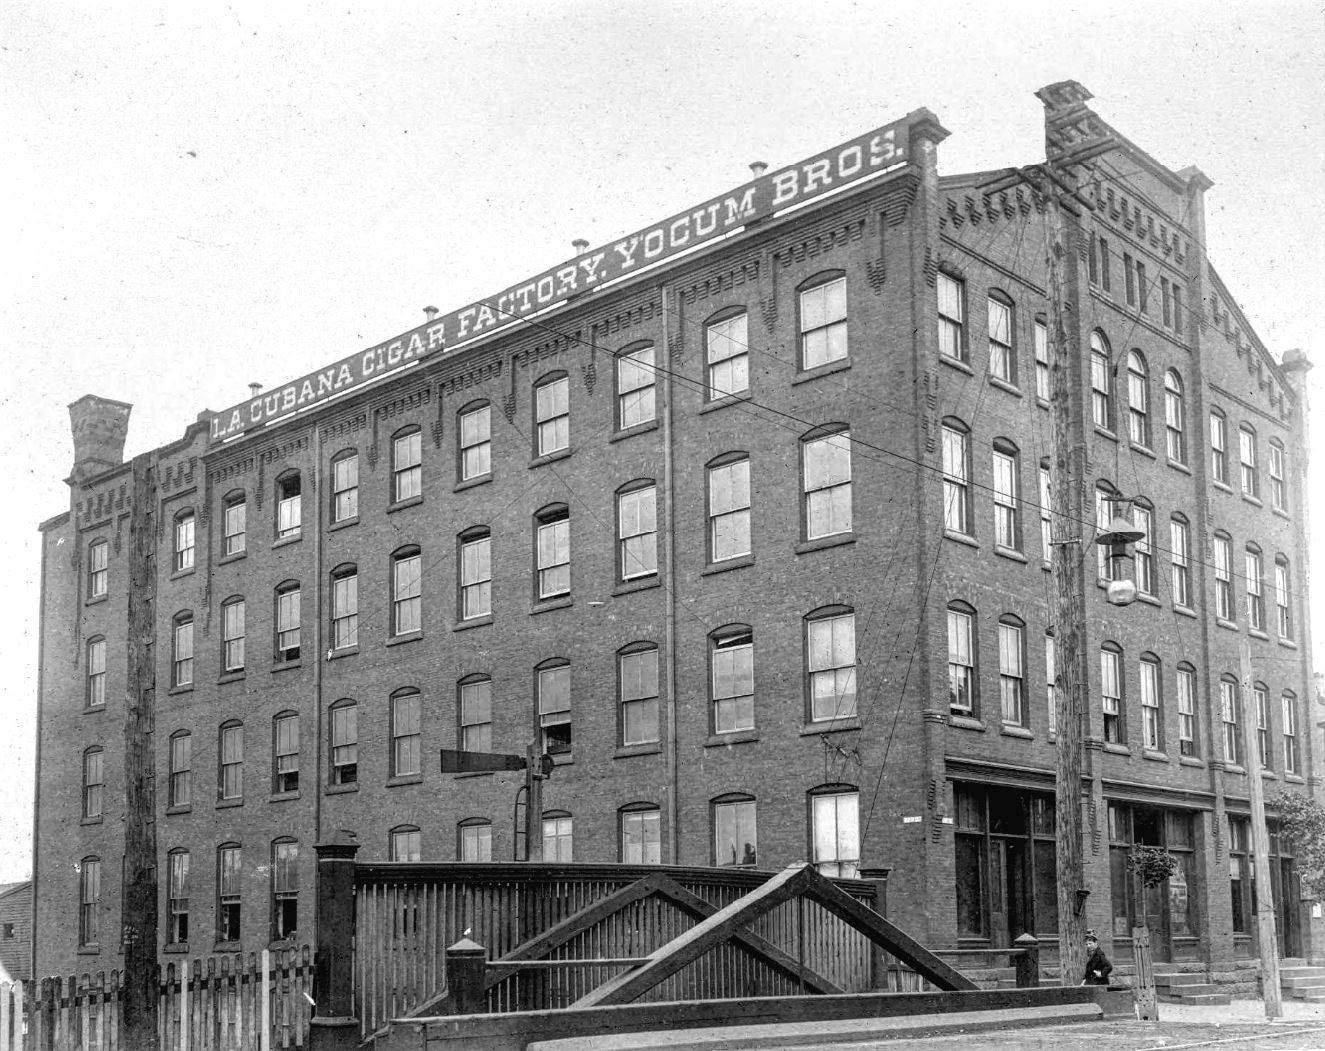 Yocum Bros. Cigar Factory